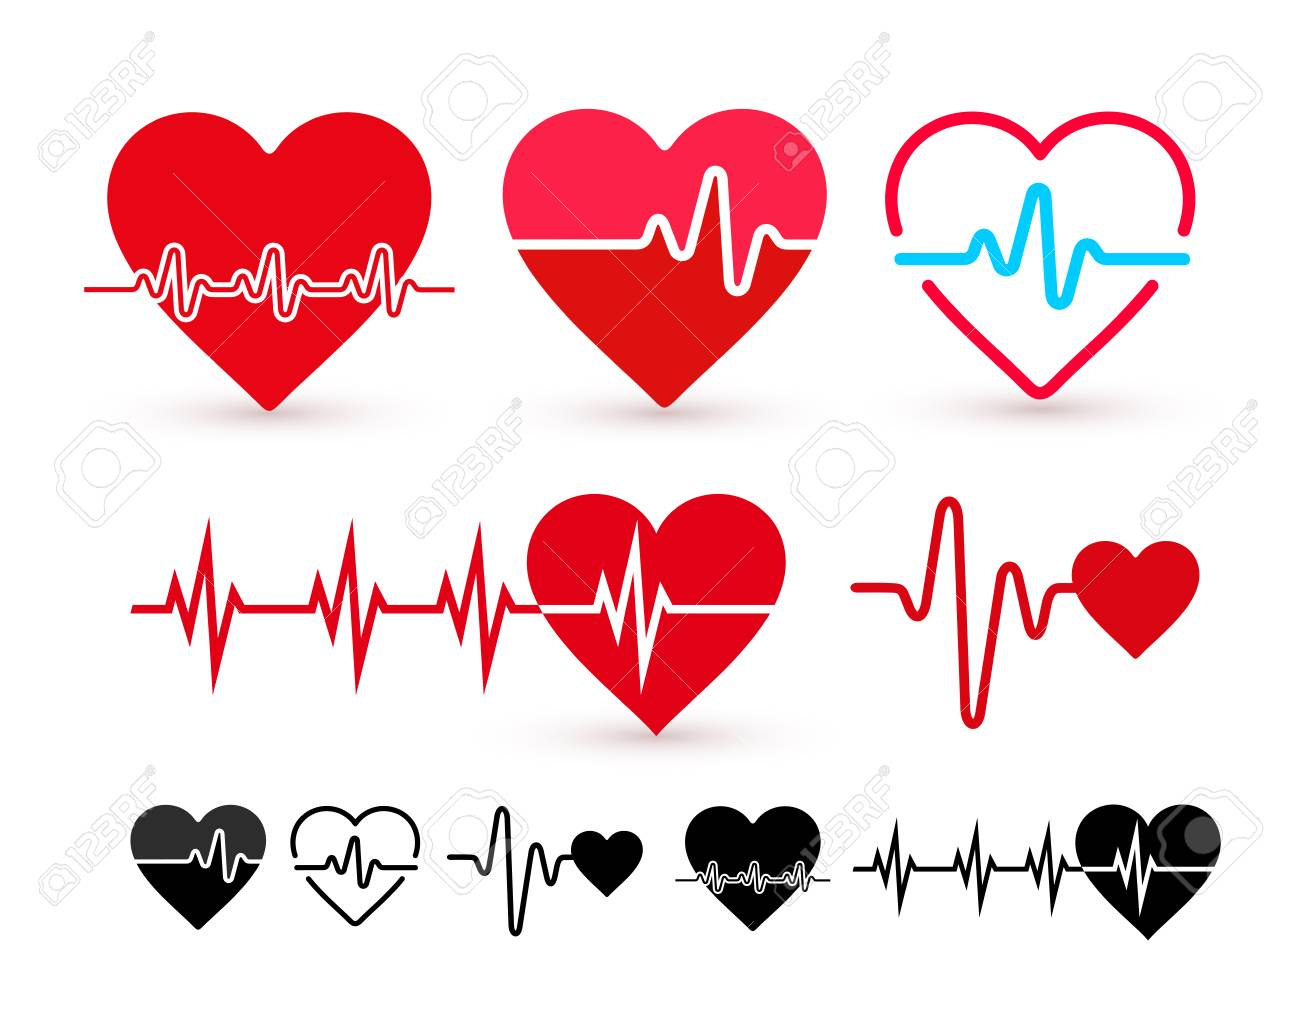 Set of Heartbeat icon, health monitor, health care. Flat design. Vector illustration. Isolated on white background - 101095437